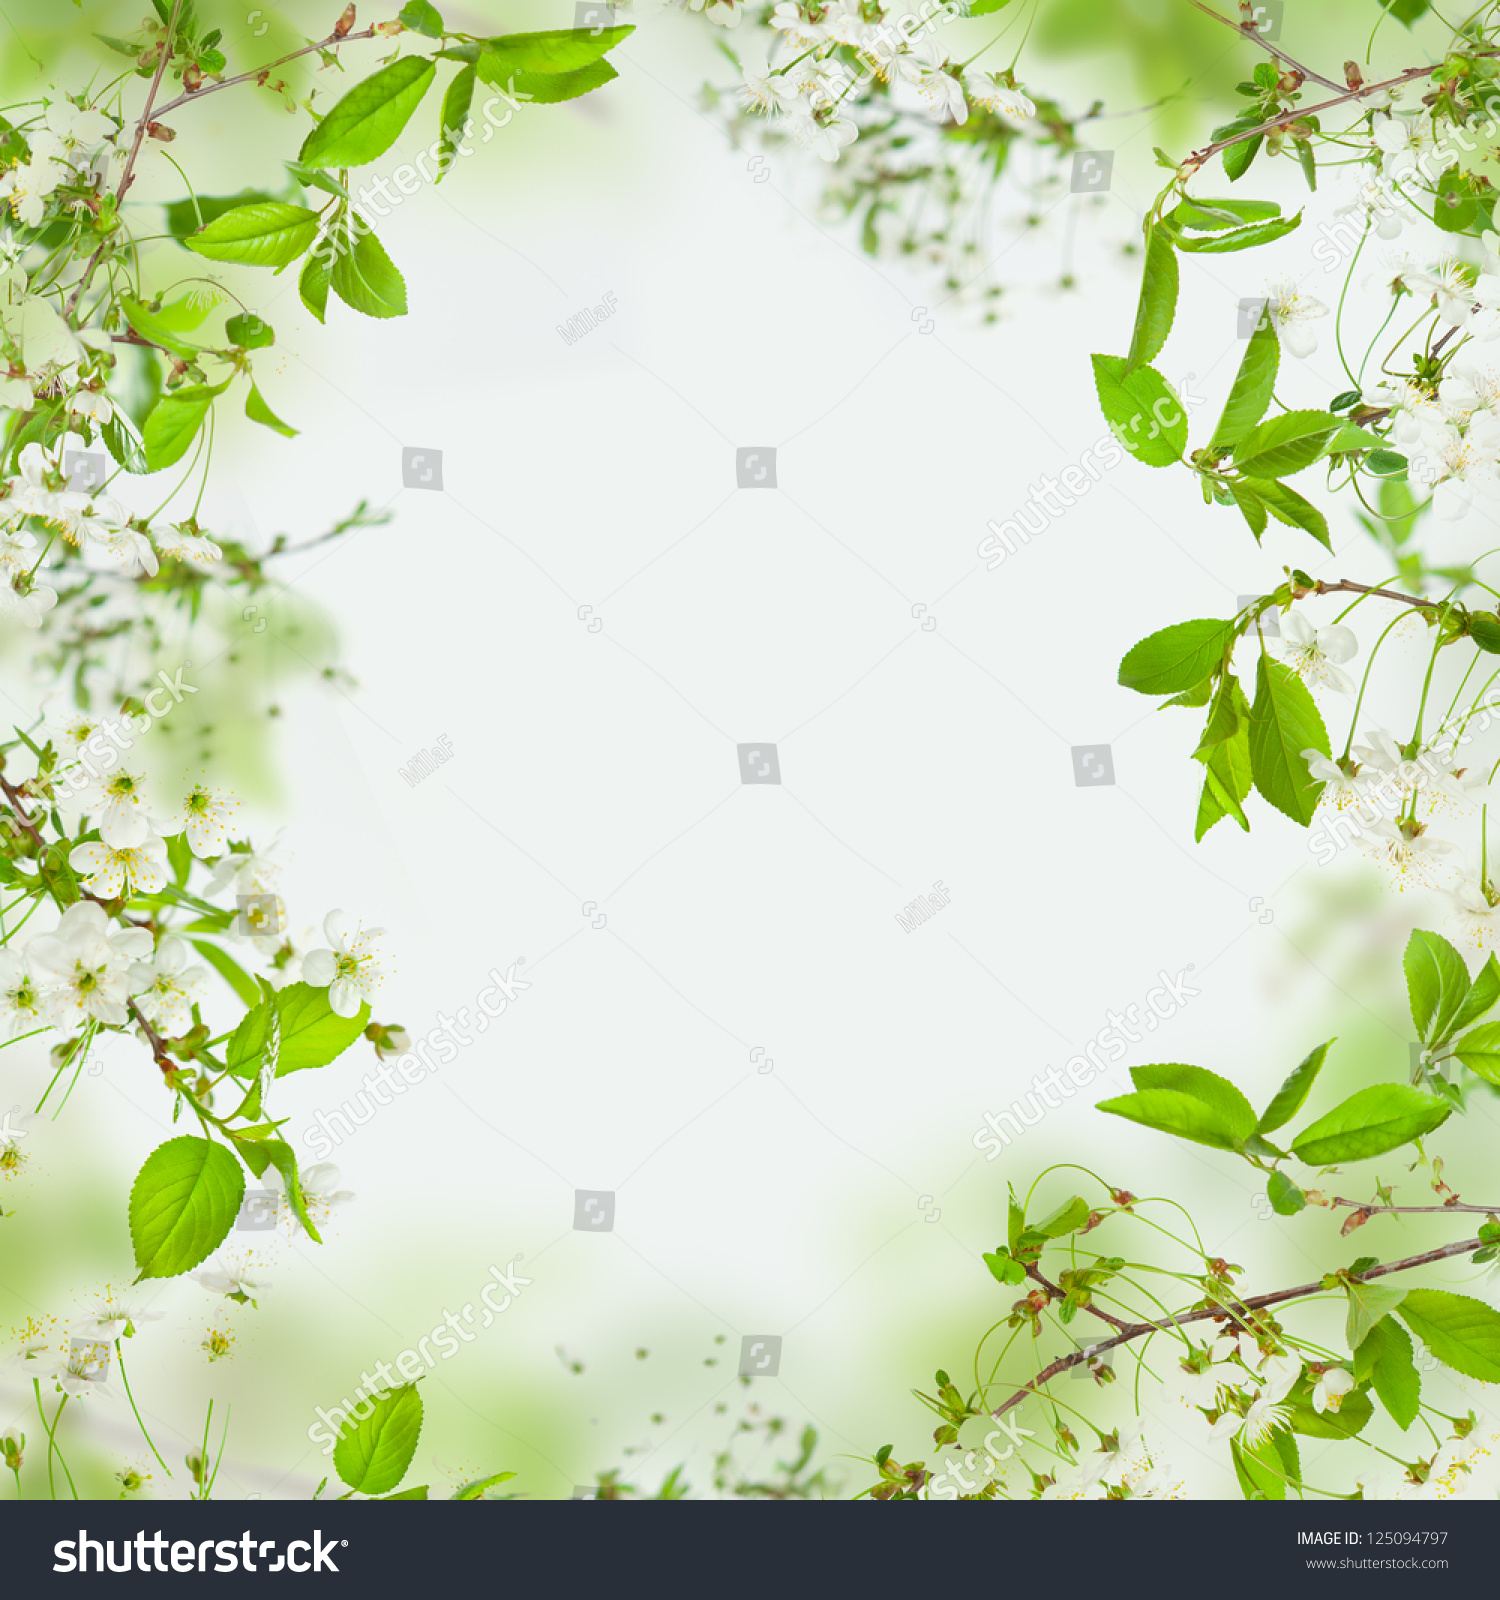 Beautiful nature backgrounds flower frames 2136792 ...